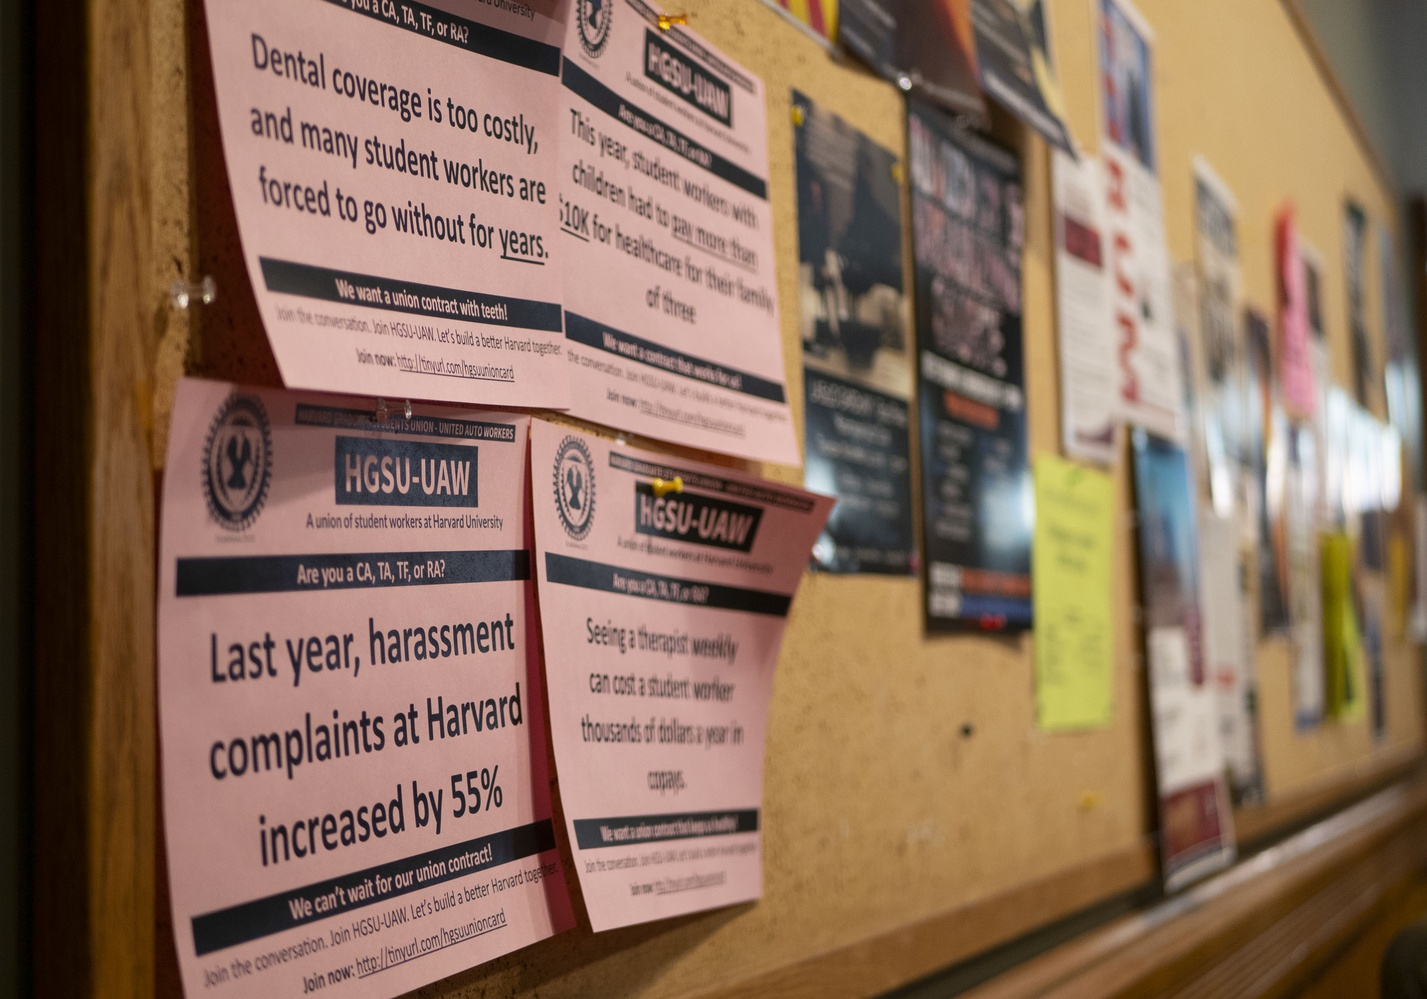 On Tuesday, the Harvard Graduate Students Union announced it would hold a strike authorization vote next week.